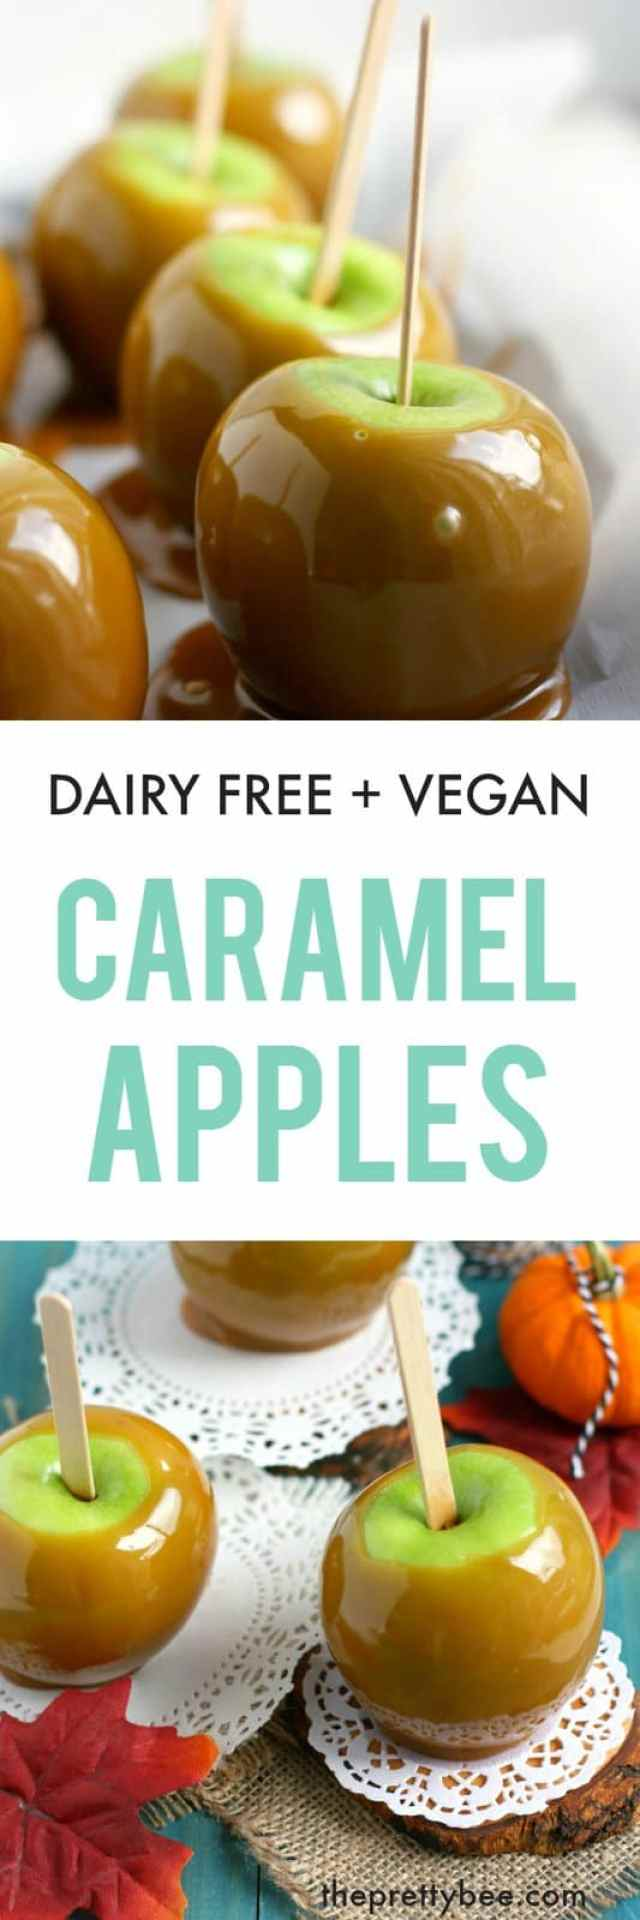 Delicious apples are coated in sweet, decadent caramel. A dairy free treat!